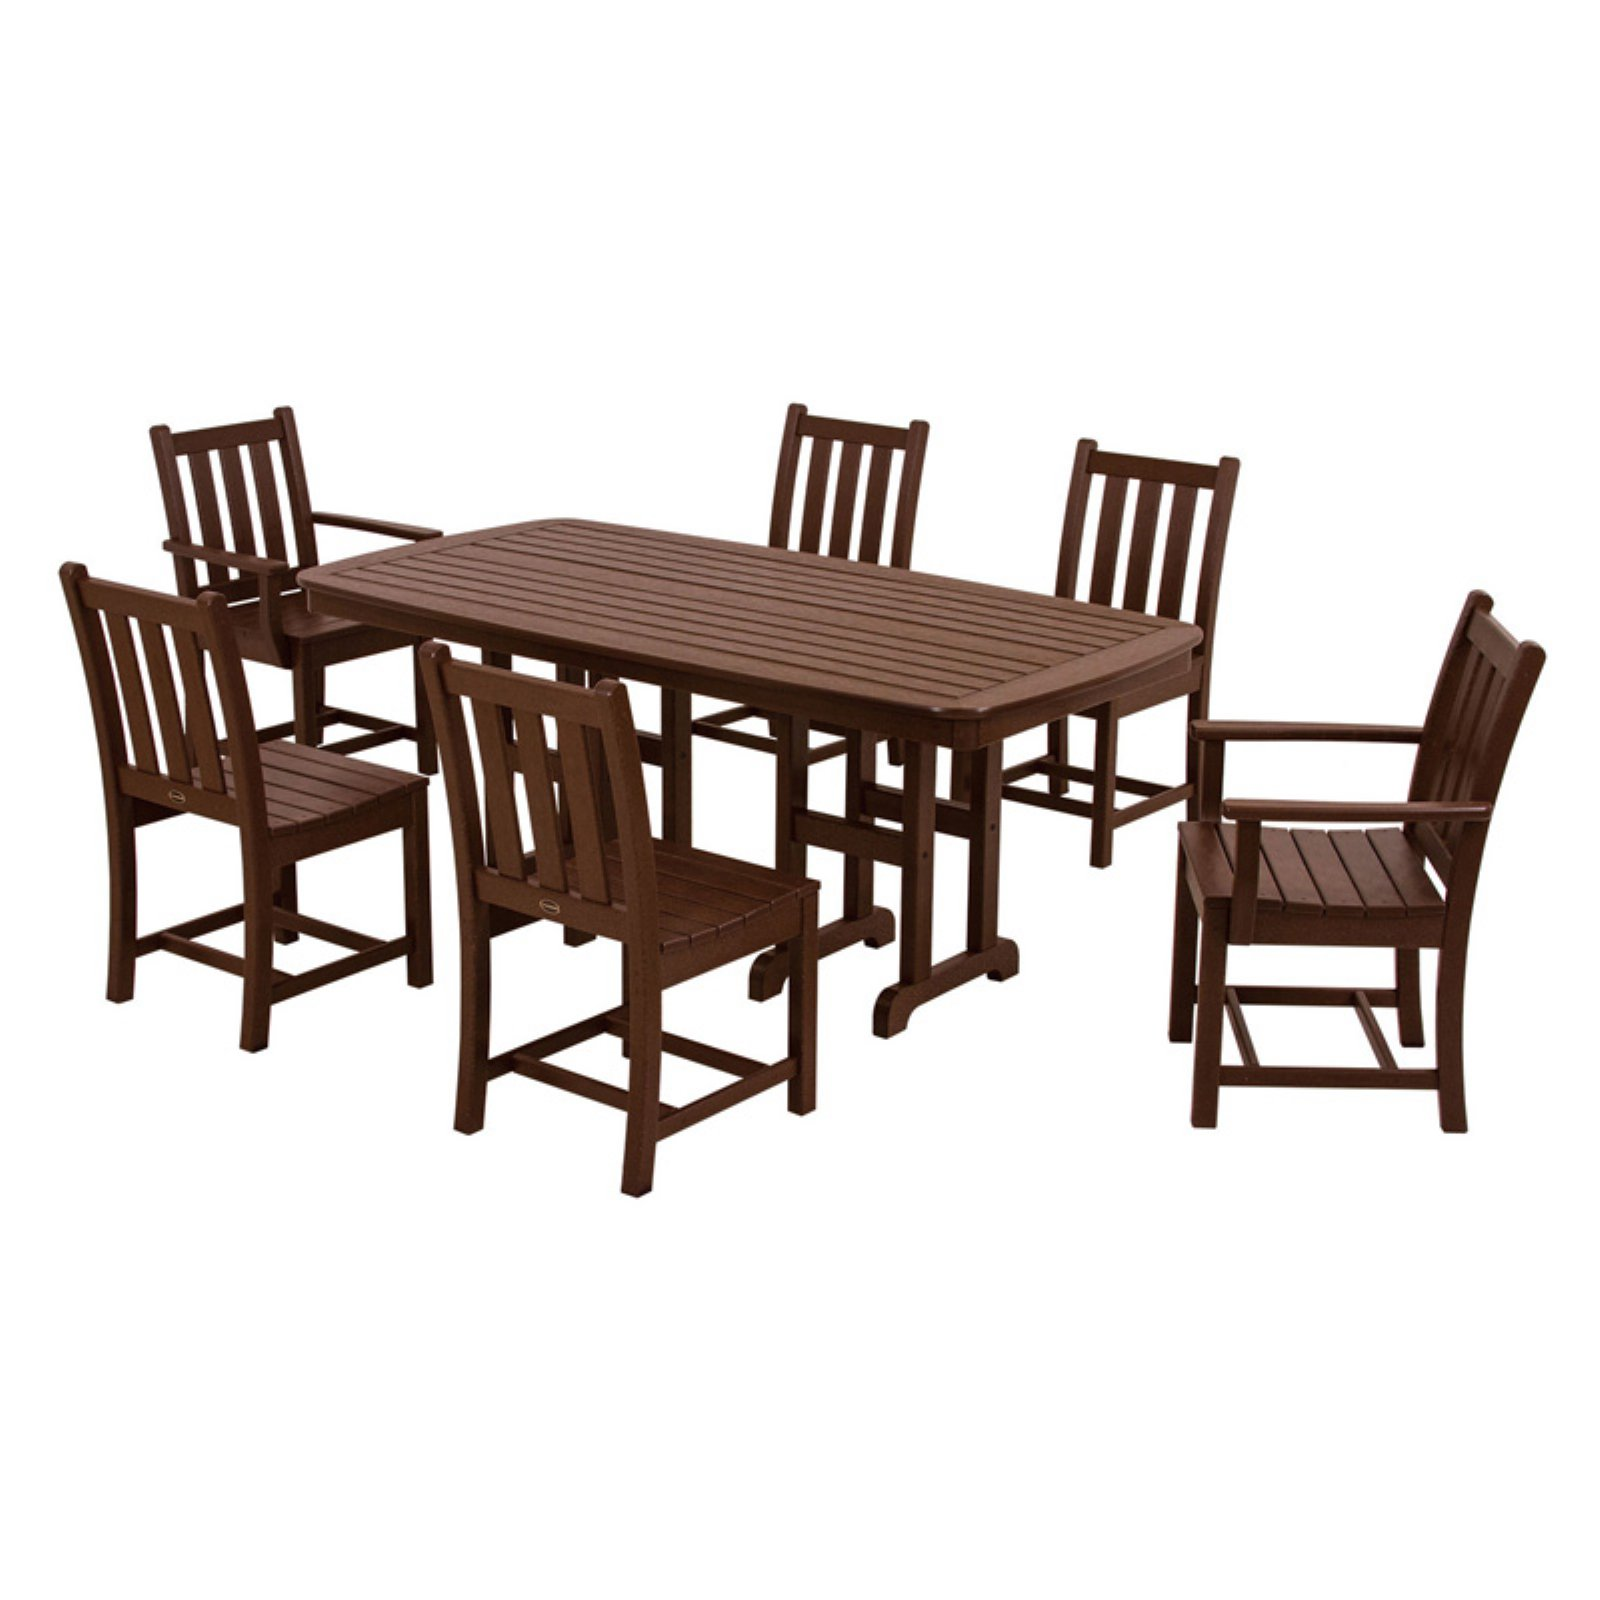 POLYWOOD® Traditional Garden Dining Set - Seats 6